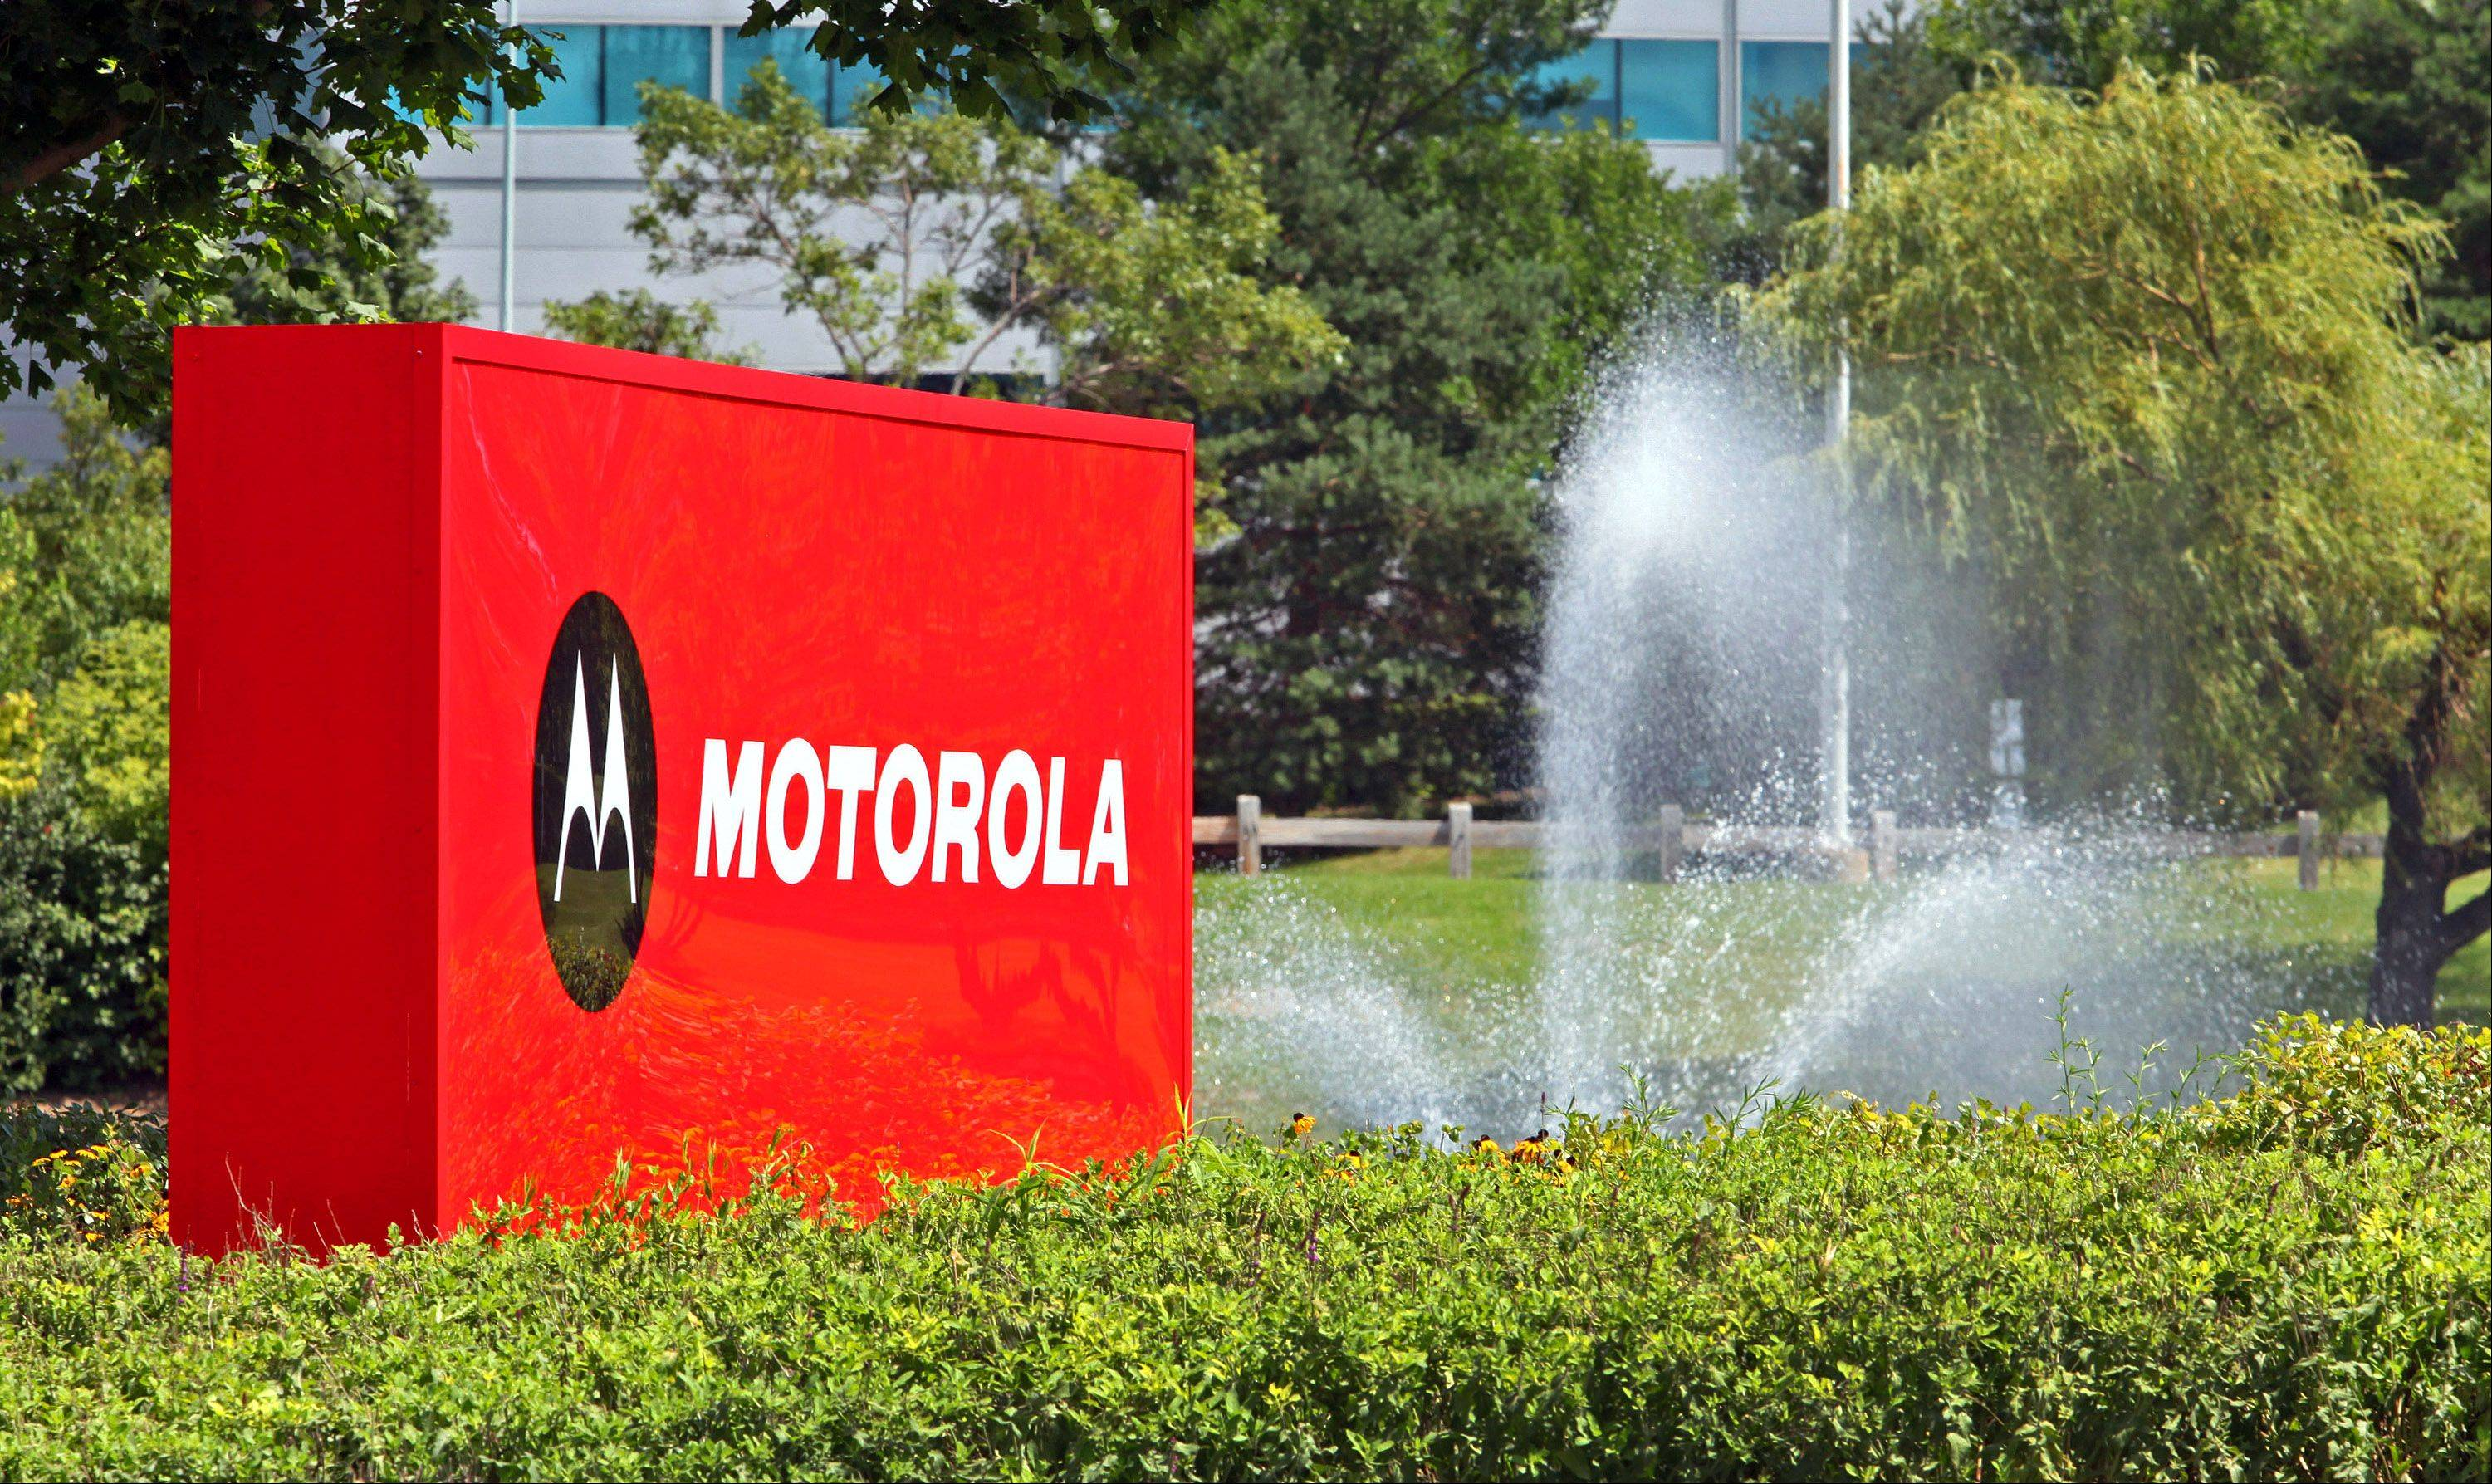 Google's purchase of Motorola Mobility for $12.5 billion will net it mobile patents and expand its hardware business.